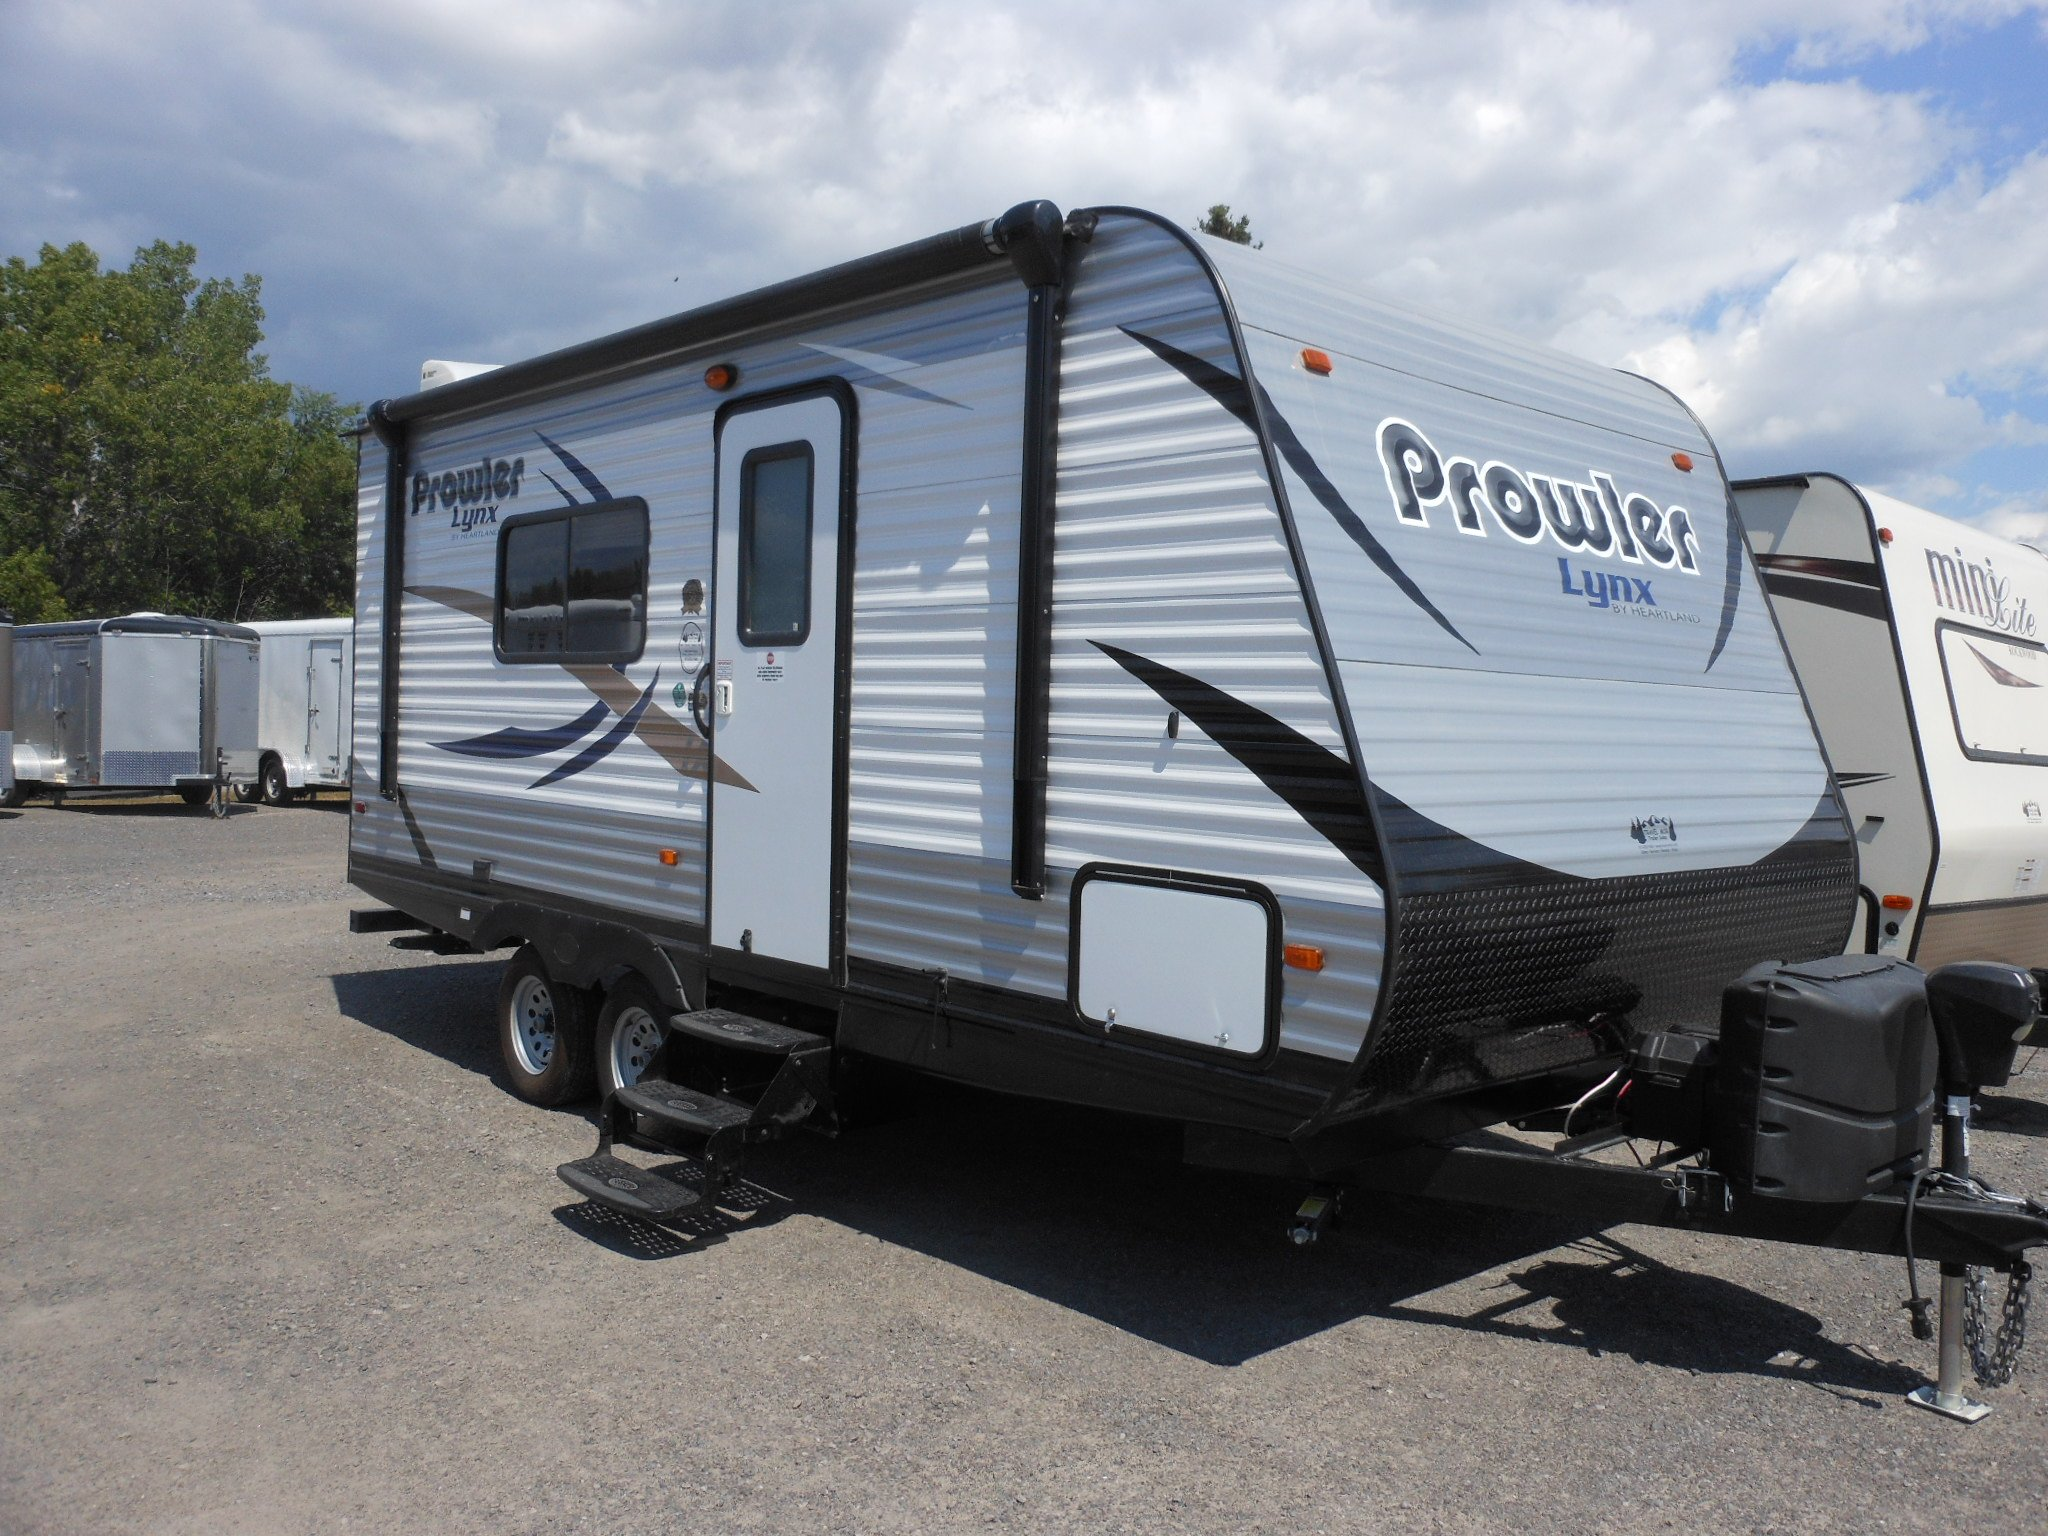 2016-Heartland-Prowler-Lynx-18LX-Travel-Trailer-2